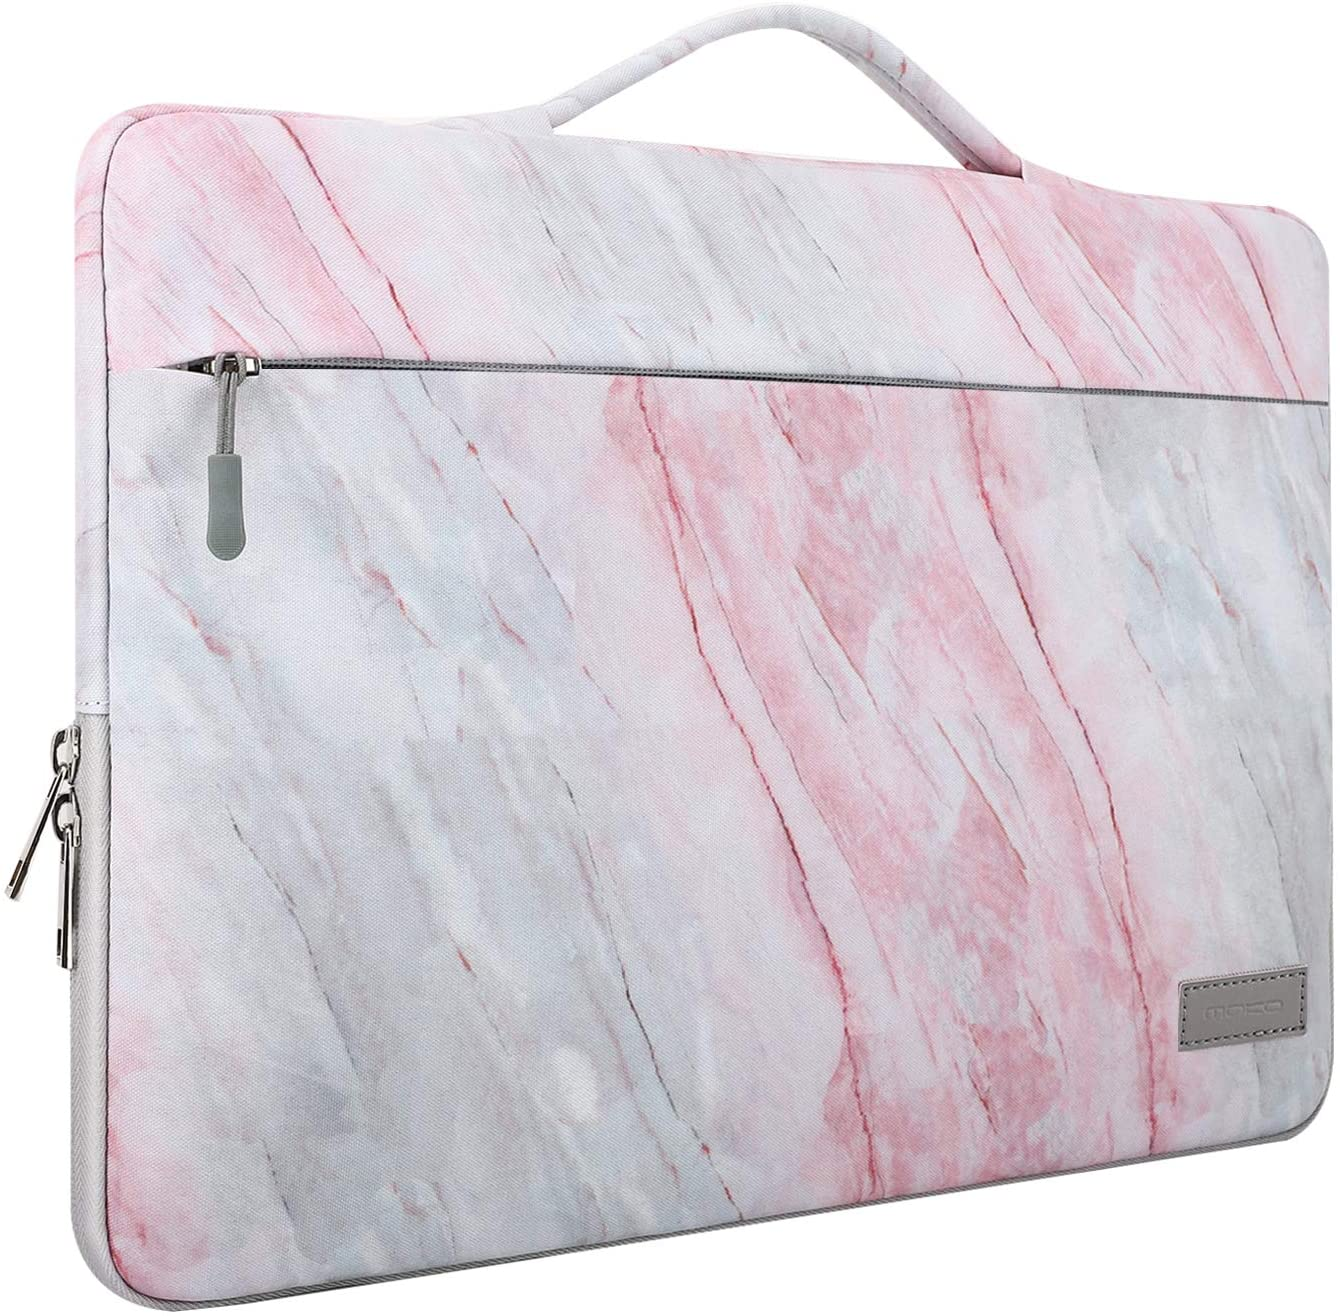 """MoKo 15.6 Inch Laptop Sleeve Case Fits 2019 MacBook Pro 16 inch, MacBook Pro 15.4"""", Surface Book 15, Ultrabook Notebook Carrying Bag for 15.6"""" Dell Lenovo HP Asus Acer Chromebook - Pink Gray Marble"""